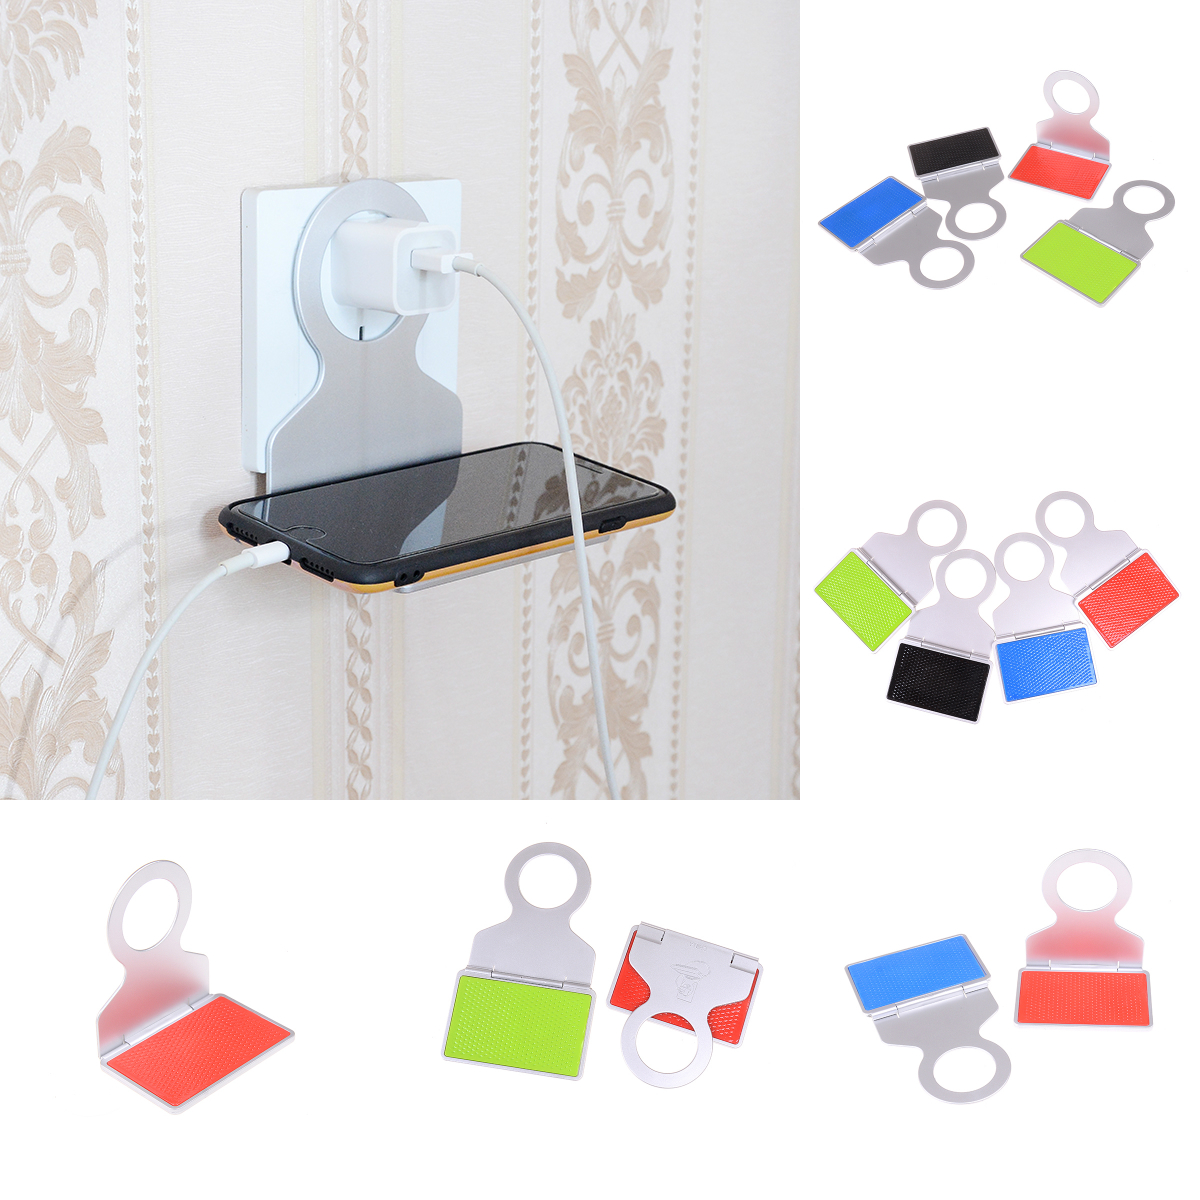 Folding Mobile Phone Wall Charger Adapter Charging Holder Hanging Support Charge Hanger Rack Shelf Cell Phone Hook Stand Bracket